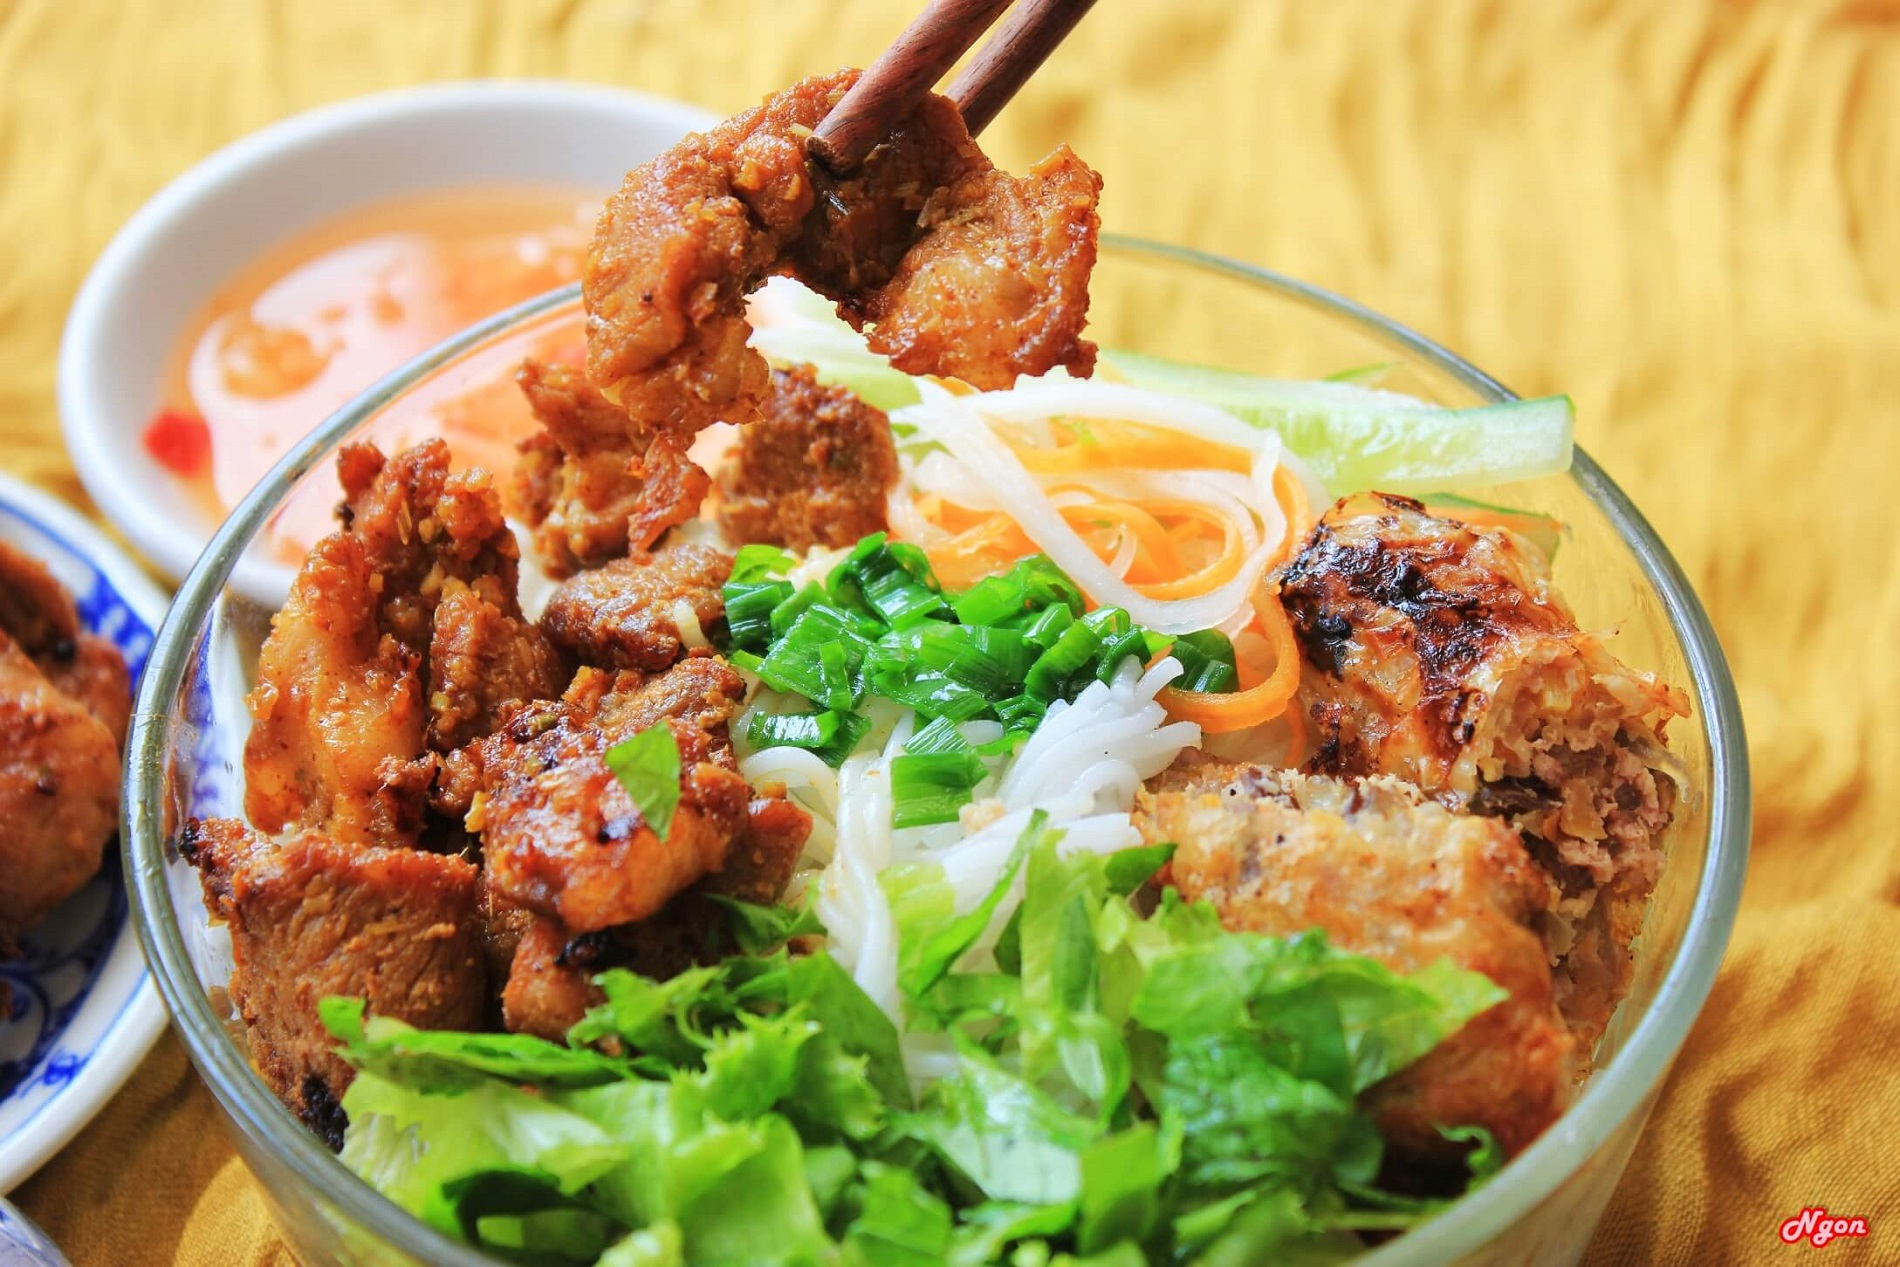 Noodles with grilled pork/beef/shrimp - Top 30 famous Vietnamese food